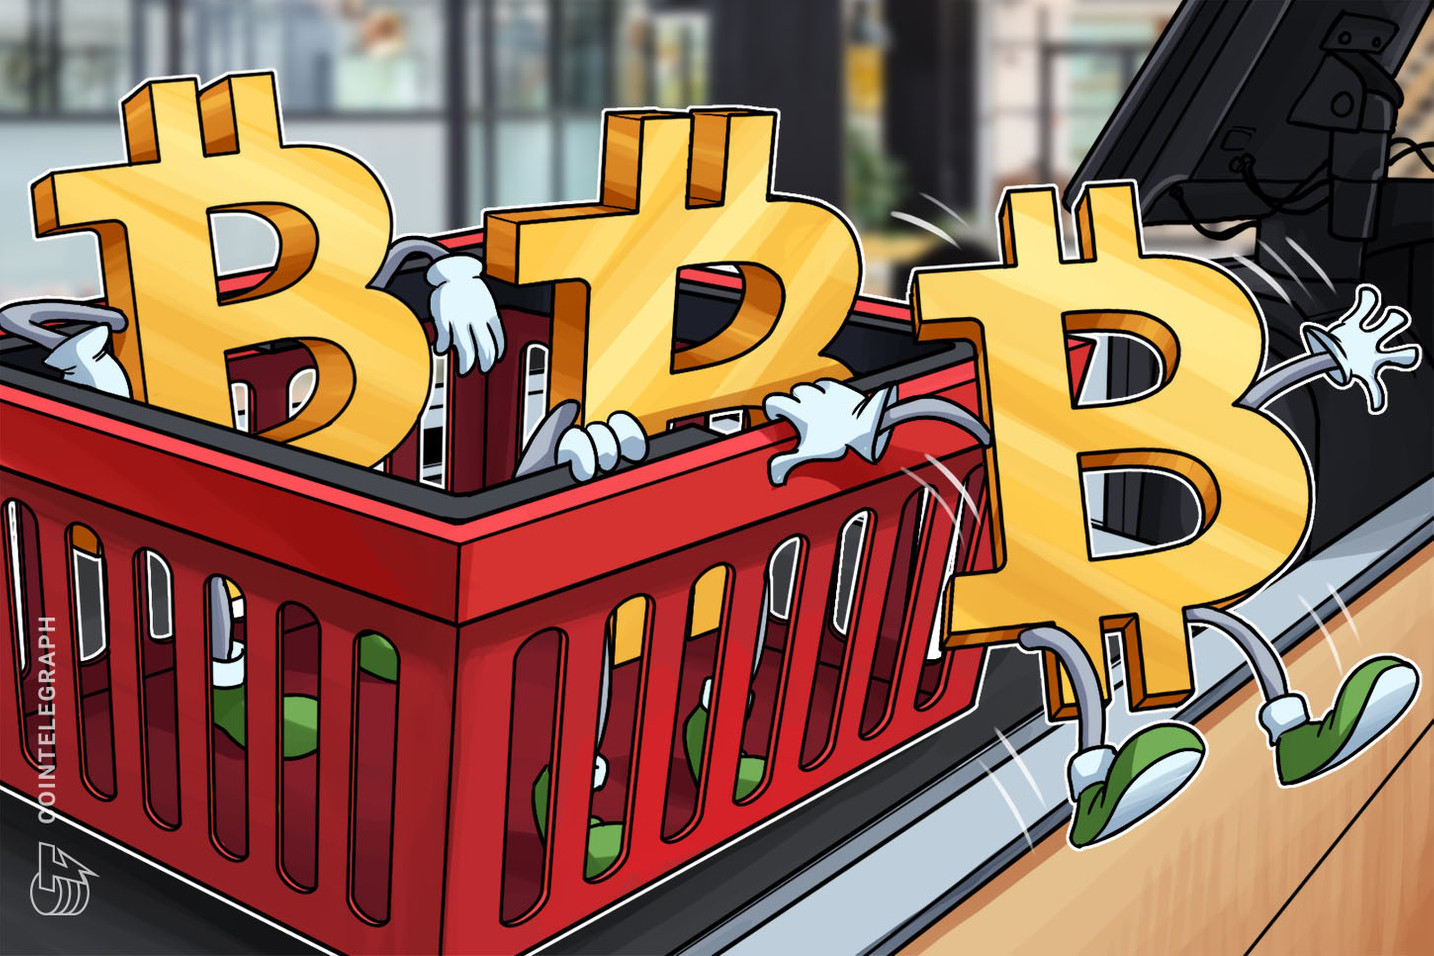 For the first time since 2018 Bitcoin balances on exchanges fell below 2.5M